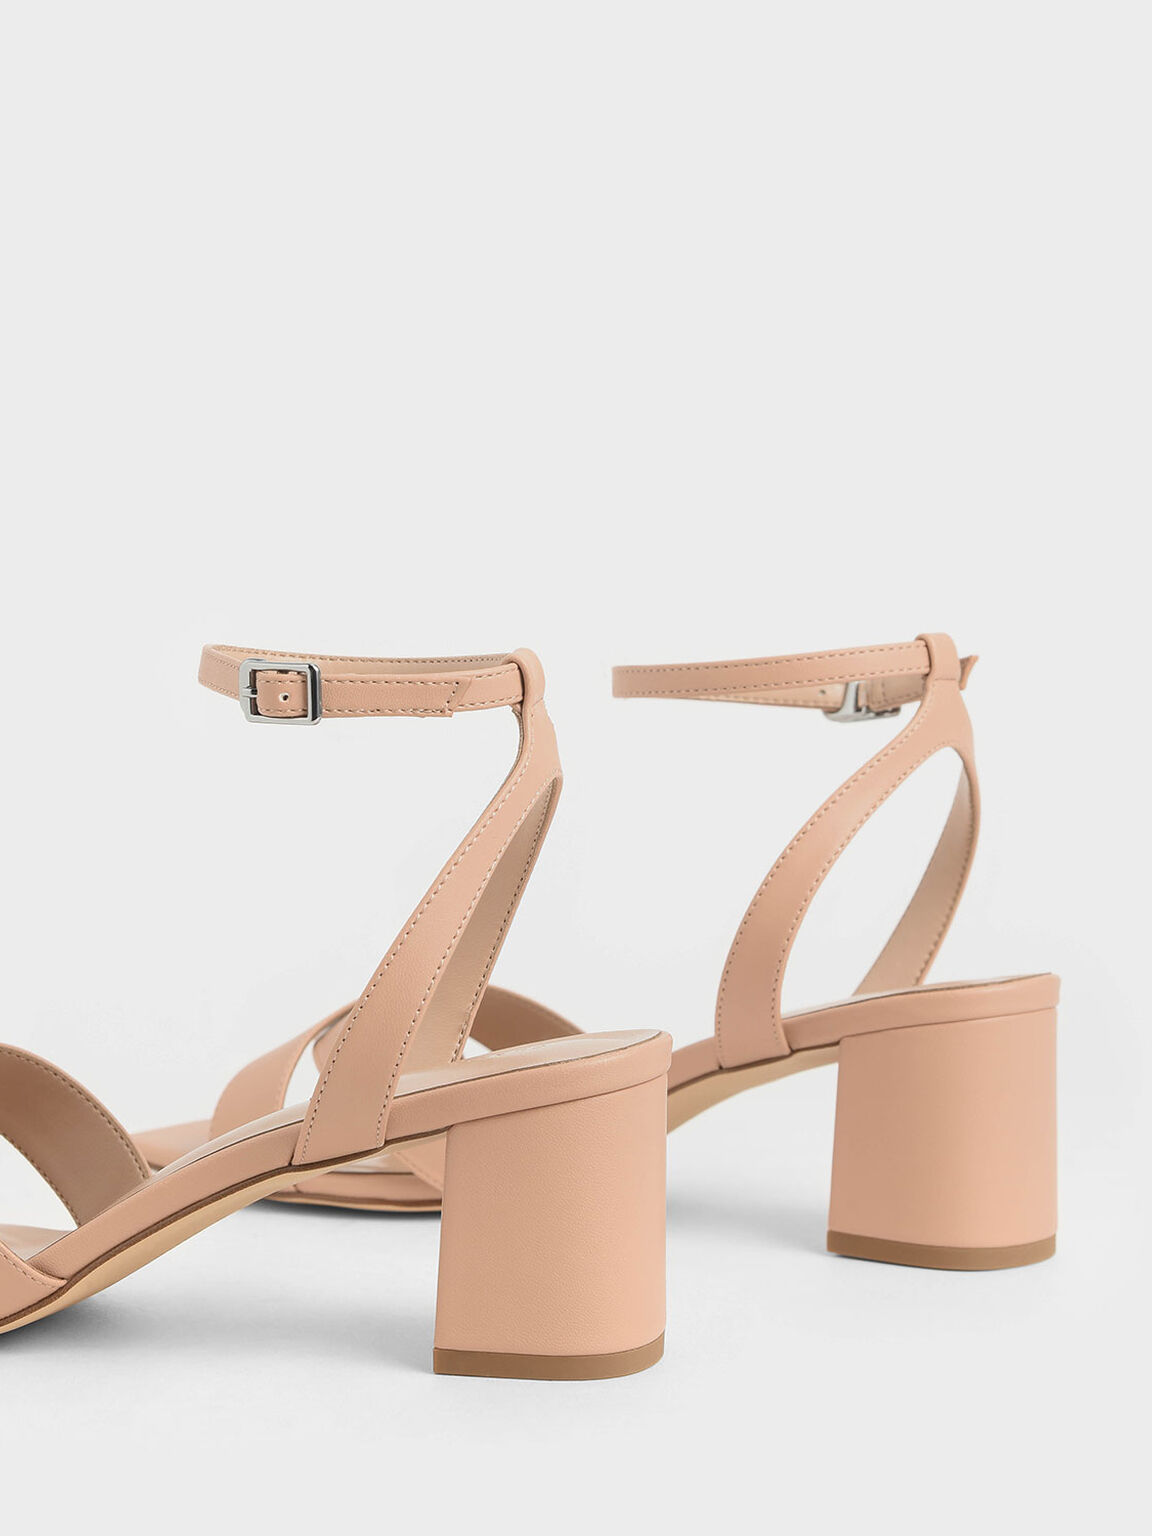 Criss Cross Block Heel Sandals, Nude, hi-res